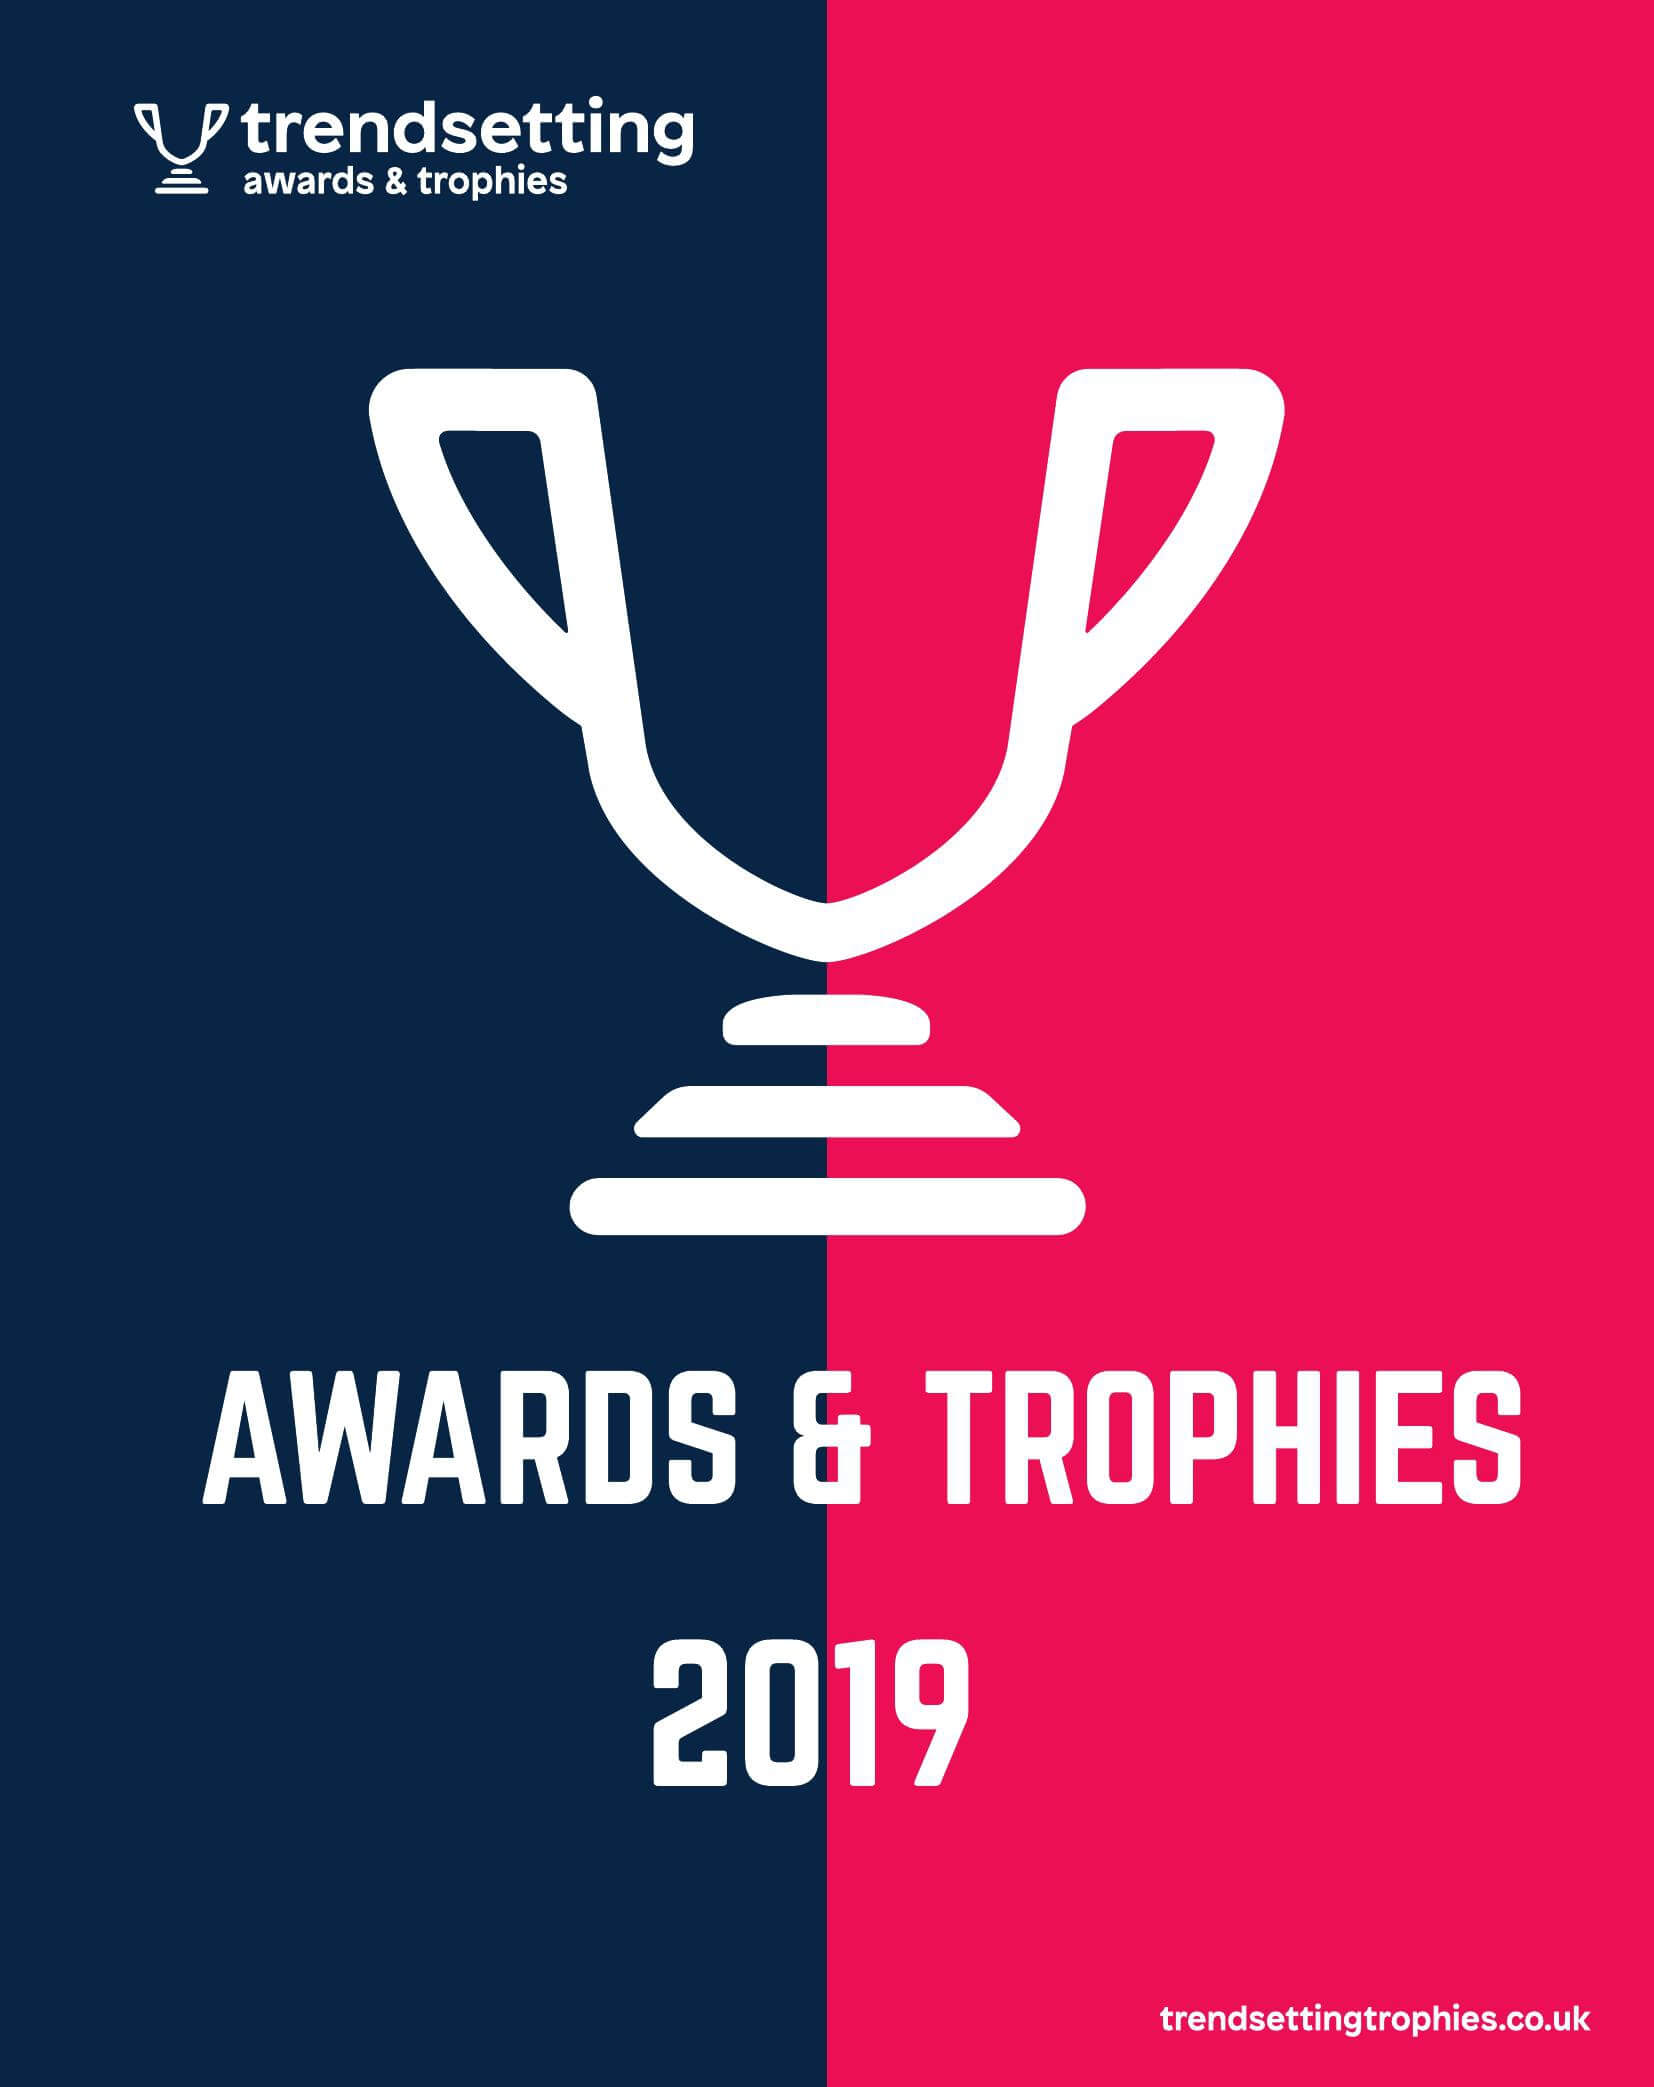 Trendsetting Awards and Trophies 2019